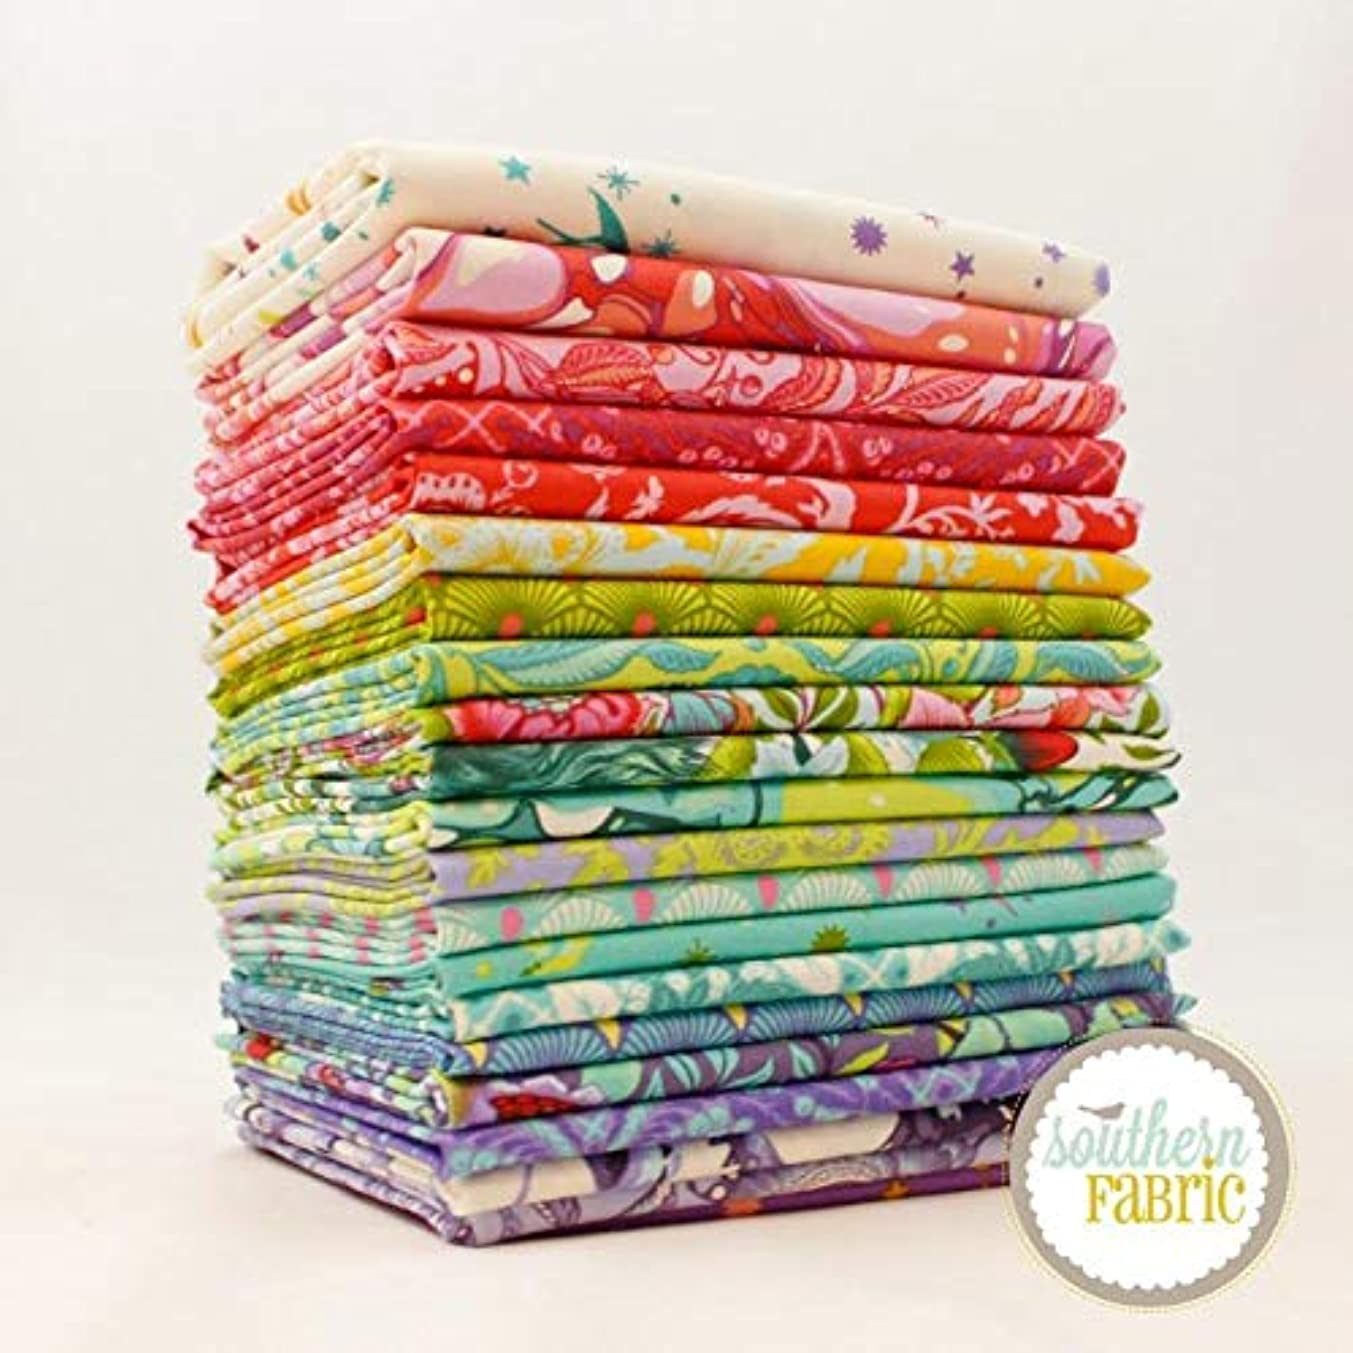 Free Spirit Pinkerville Fat Quarter Bundle (21 pcs) by Tula Pink 18 x 21 inches (45.72cm x 53.34cm) Fabric cuts DIY Quilt Fabric